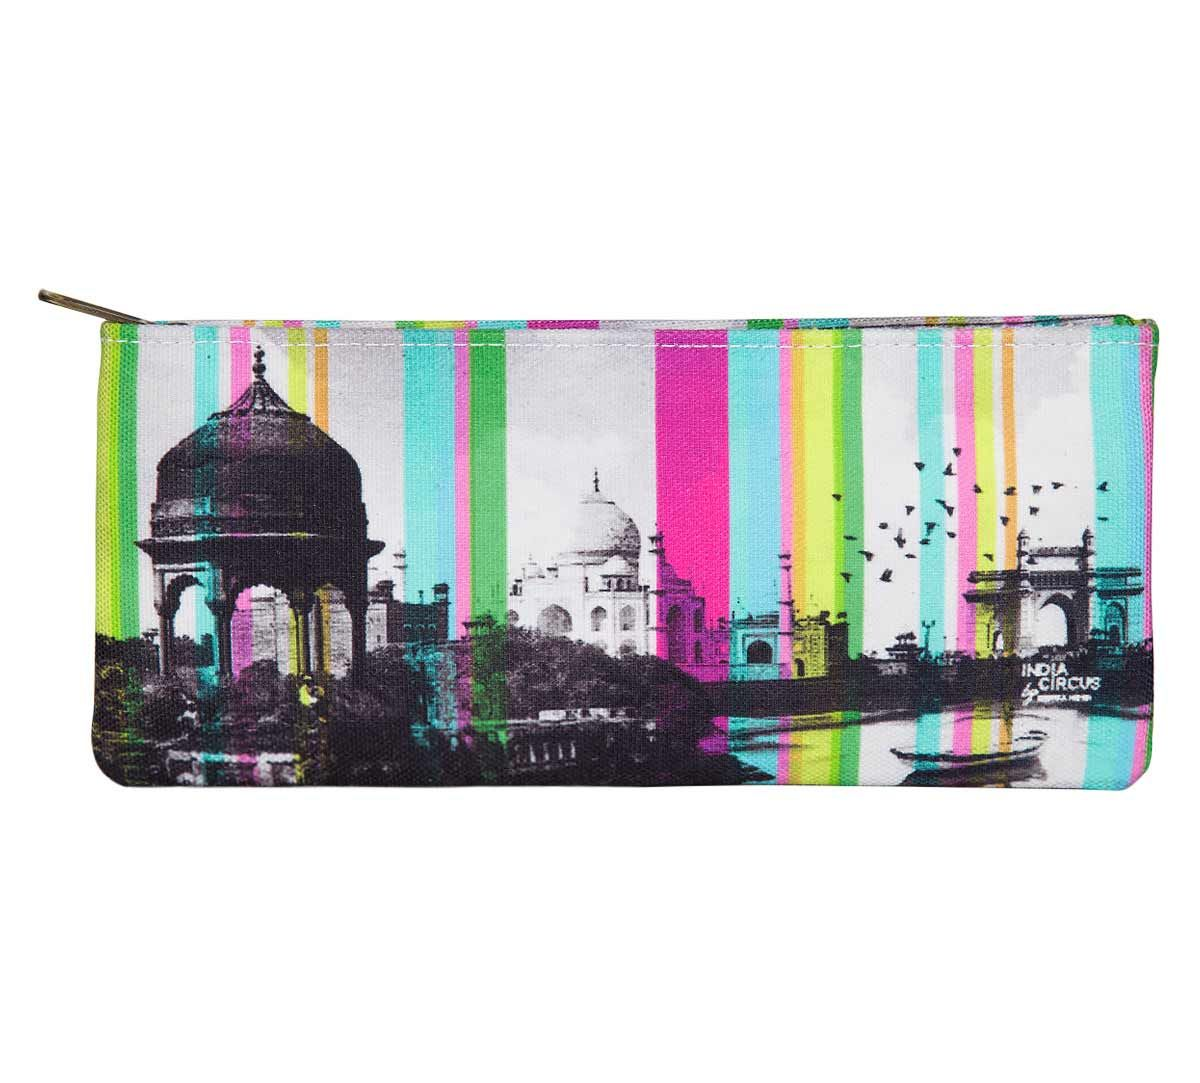 India Circus Strokes of India Small Makeup Pouch